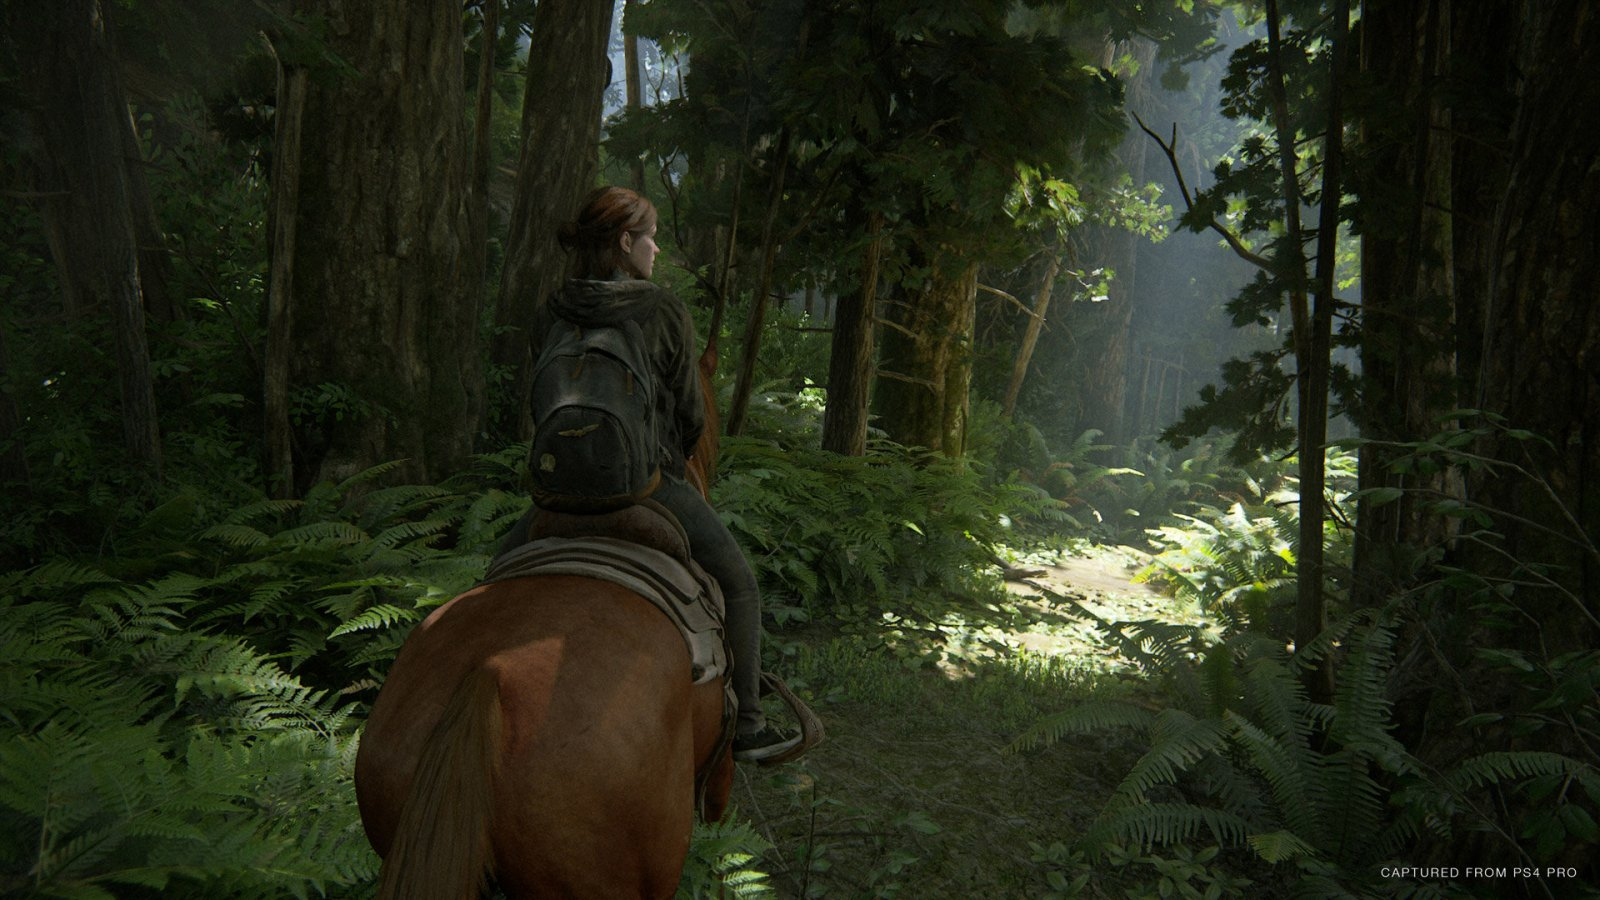 Ellie en The Last of Us Parte II montando a caballo en medio del bosque